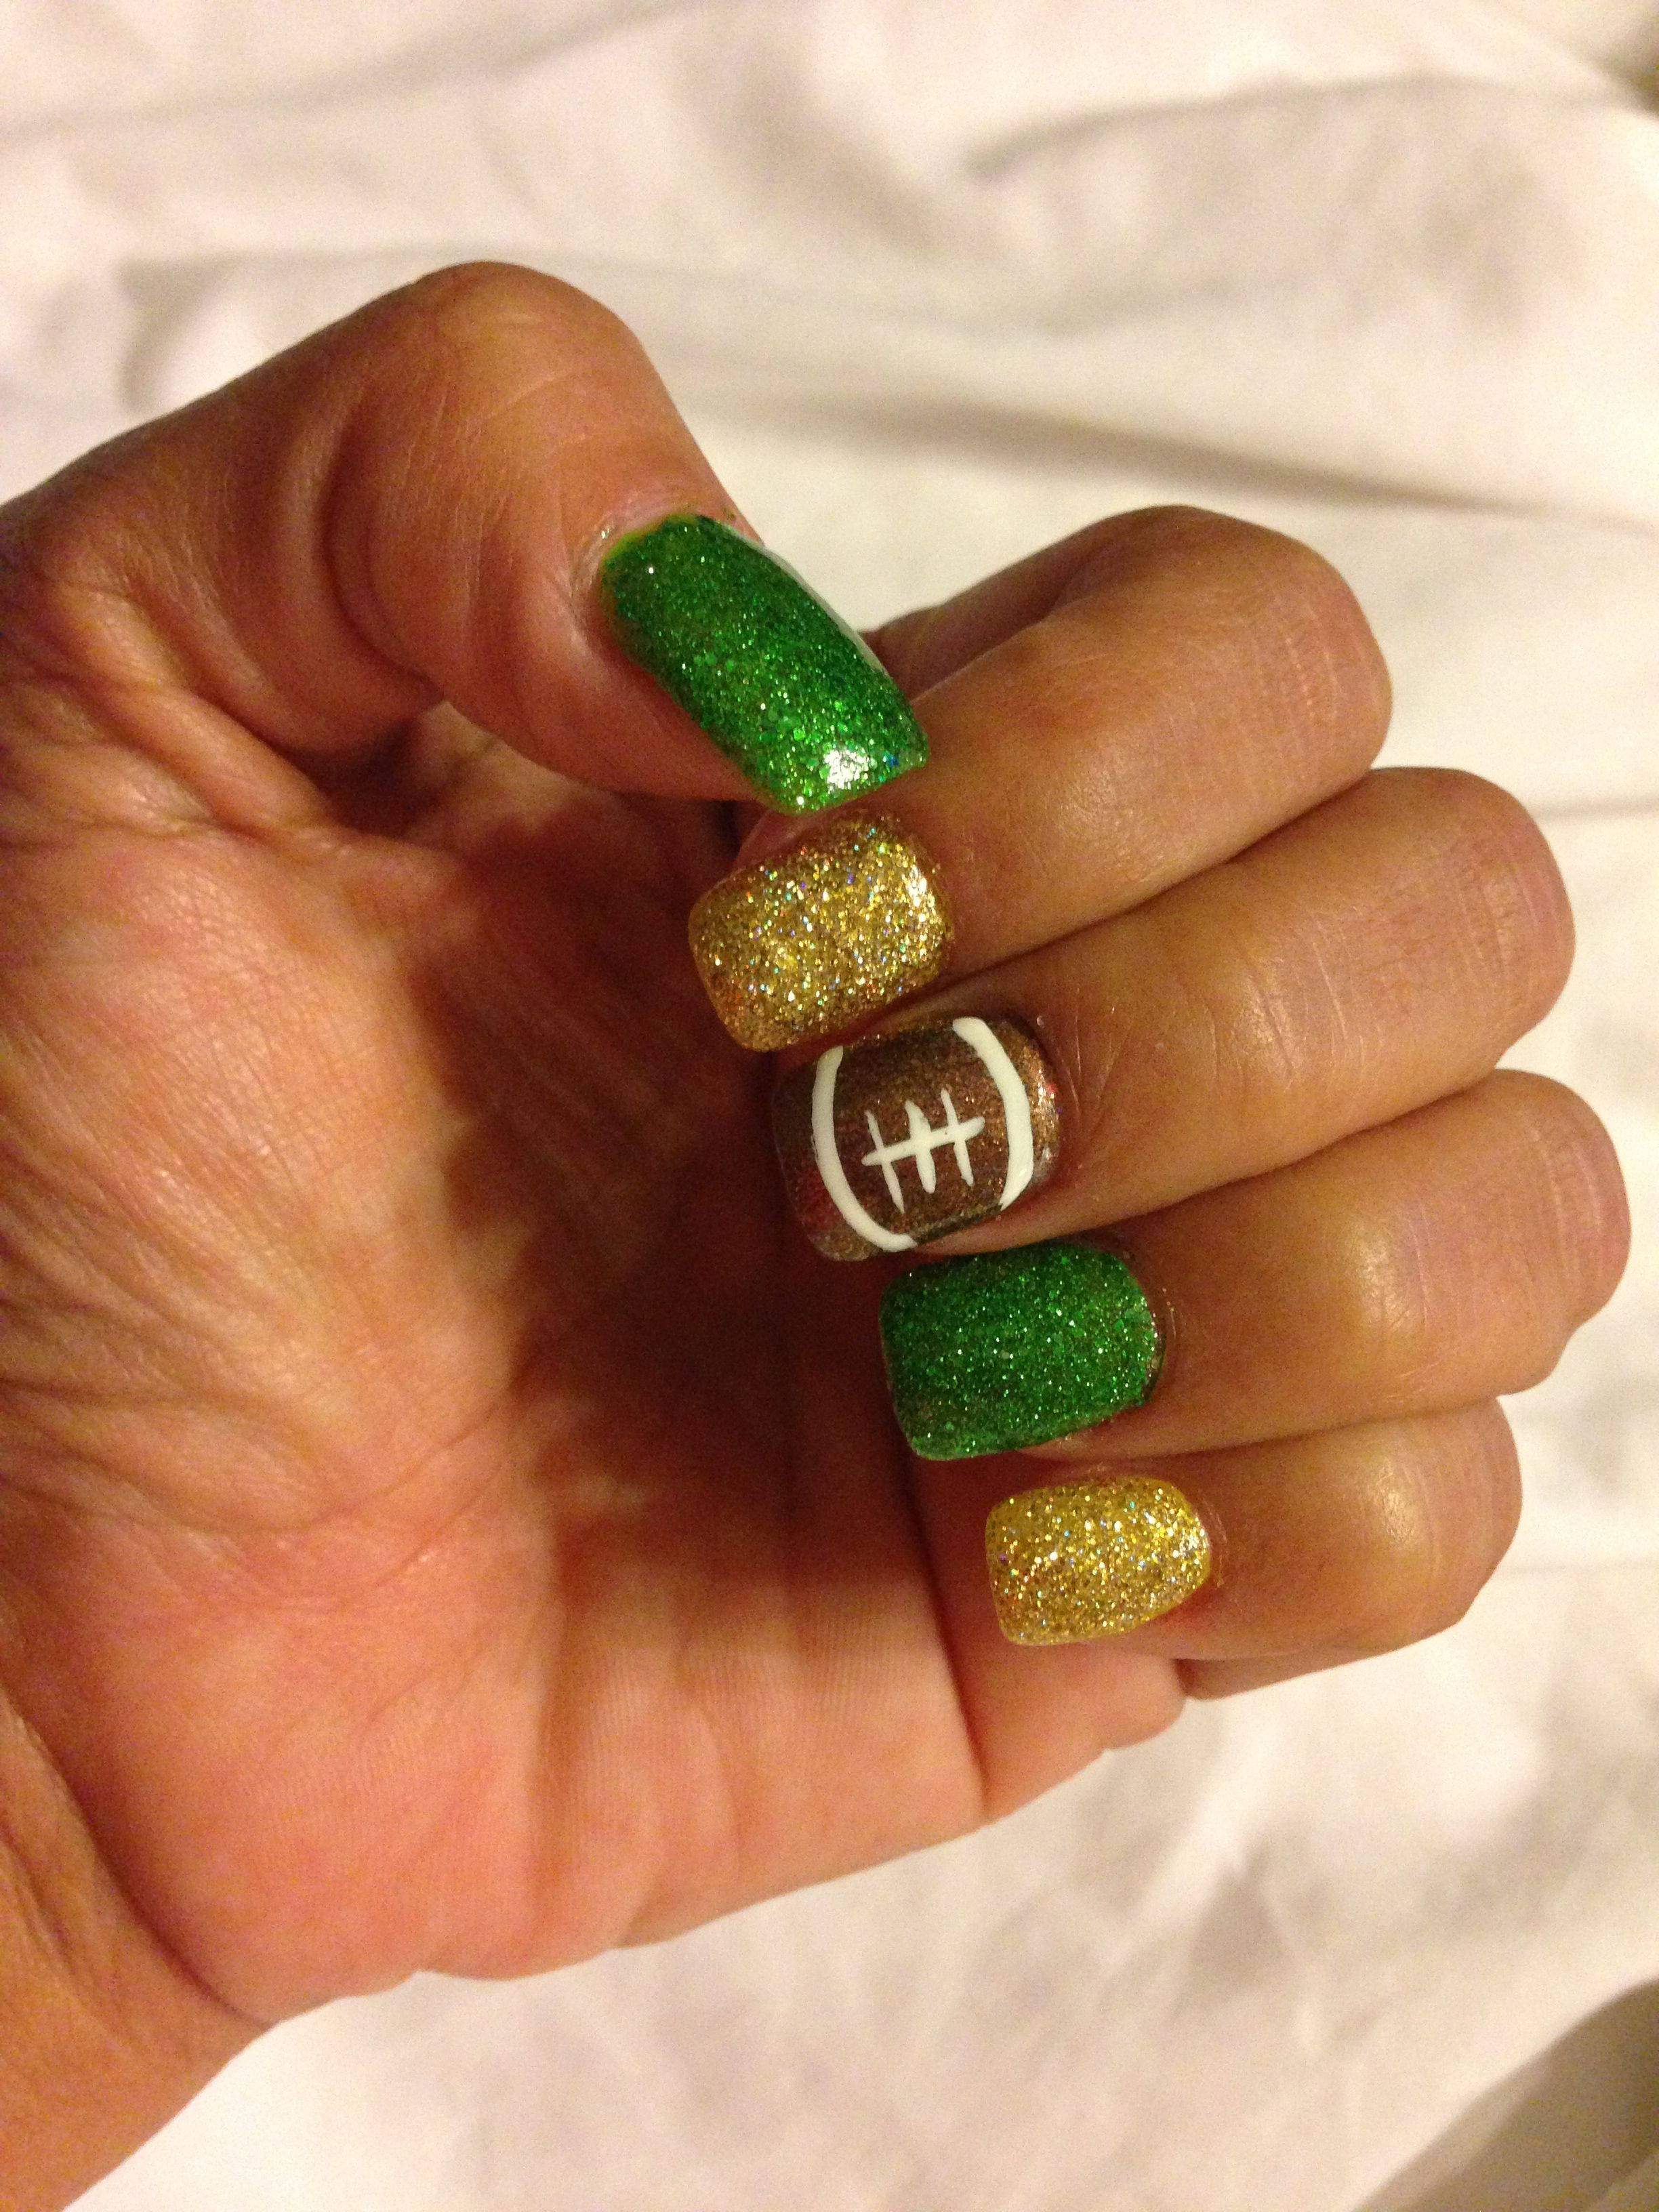 Green Bay Packers Nails Totally Not A Packers Fan But I Could Make This For The Titans Packer Nails Football Nail Designs Super Cute Nails